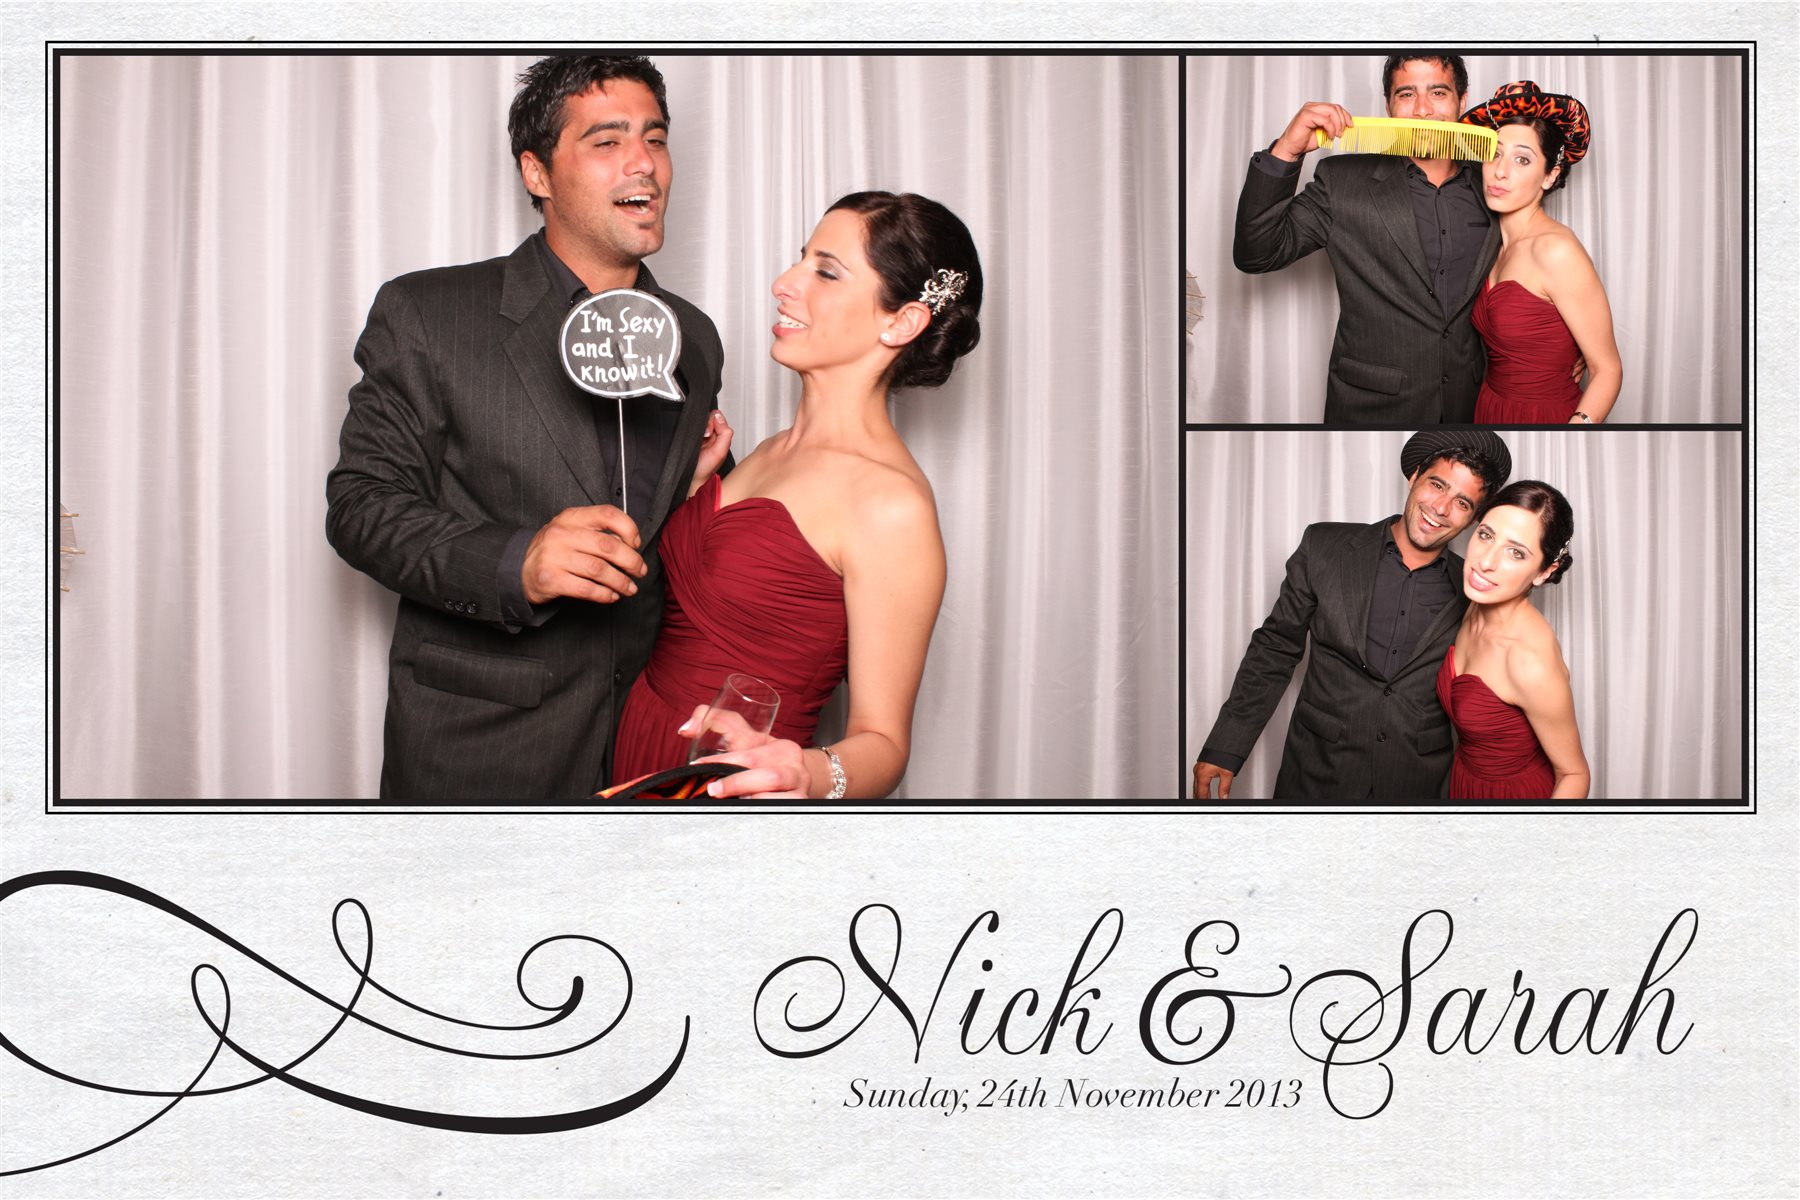 Nick and sarah wedding